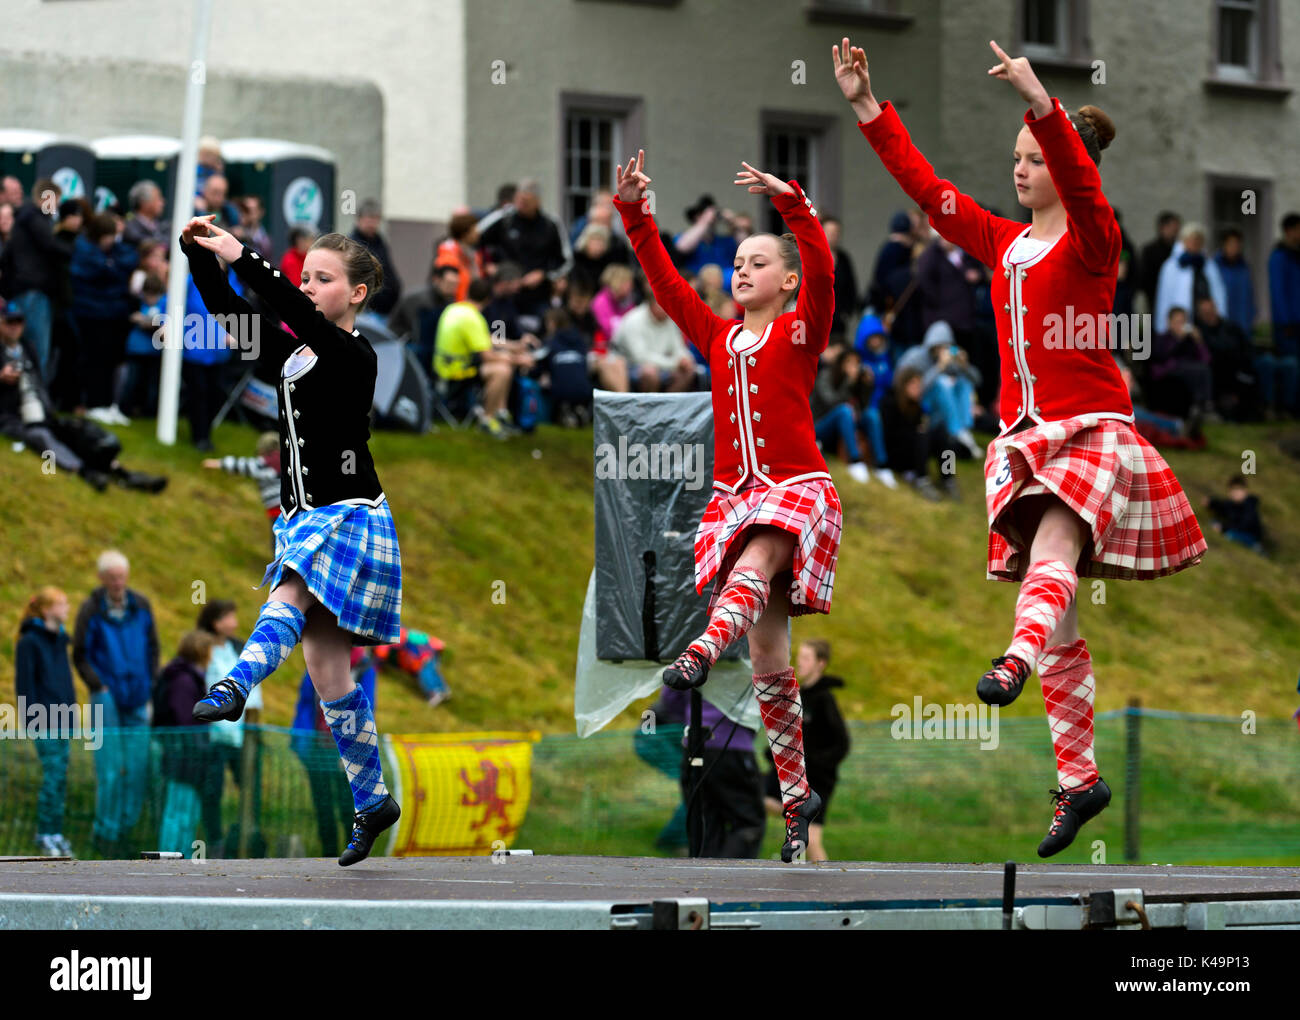 Girls In Kilted Skirts At A Folkloric Dance Performance, Ceres, Scotland, United Kingdom - Stock Image